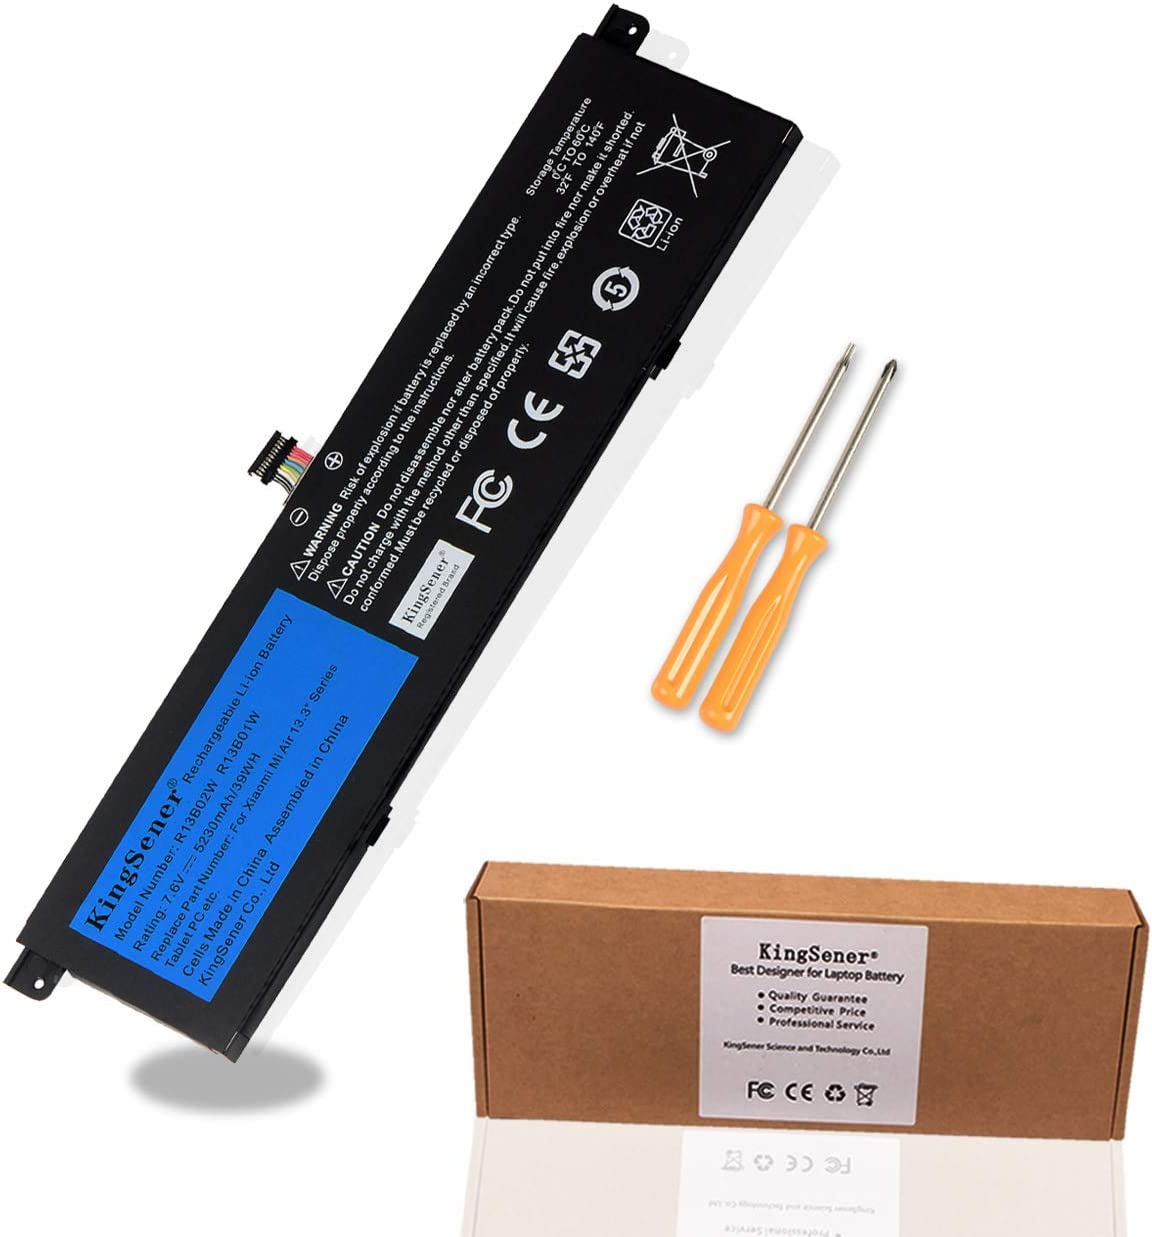 "KingSener New R13B01W R13B02W Laptop Battery for Xiaomi Mi Air 13.3"" Series Tablet PC 7.6V 5230mAh /39WH"